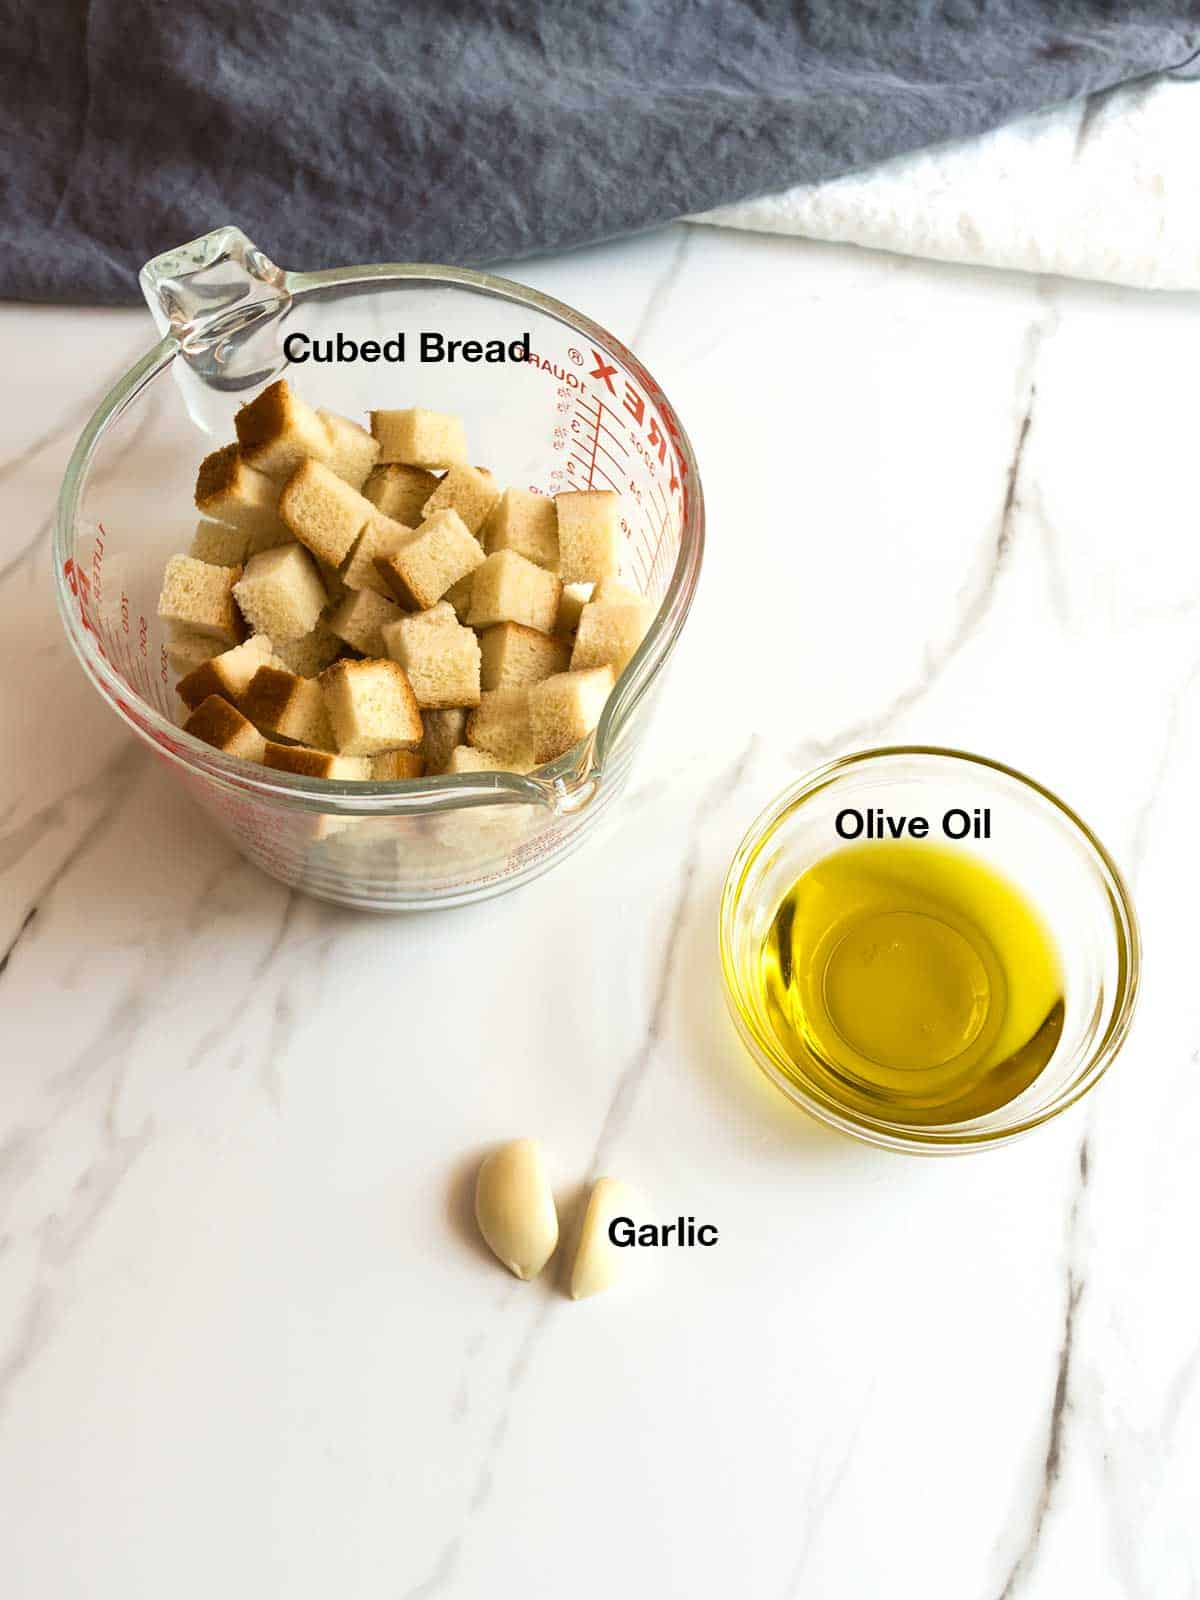 Ingredients for Garlic Croutons